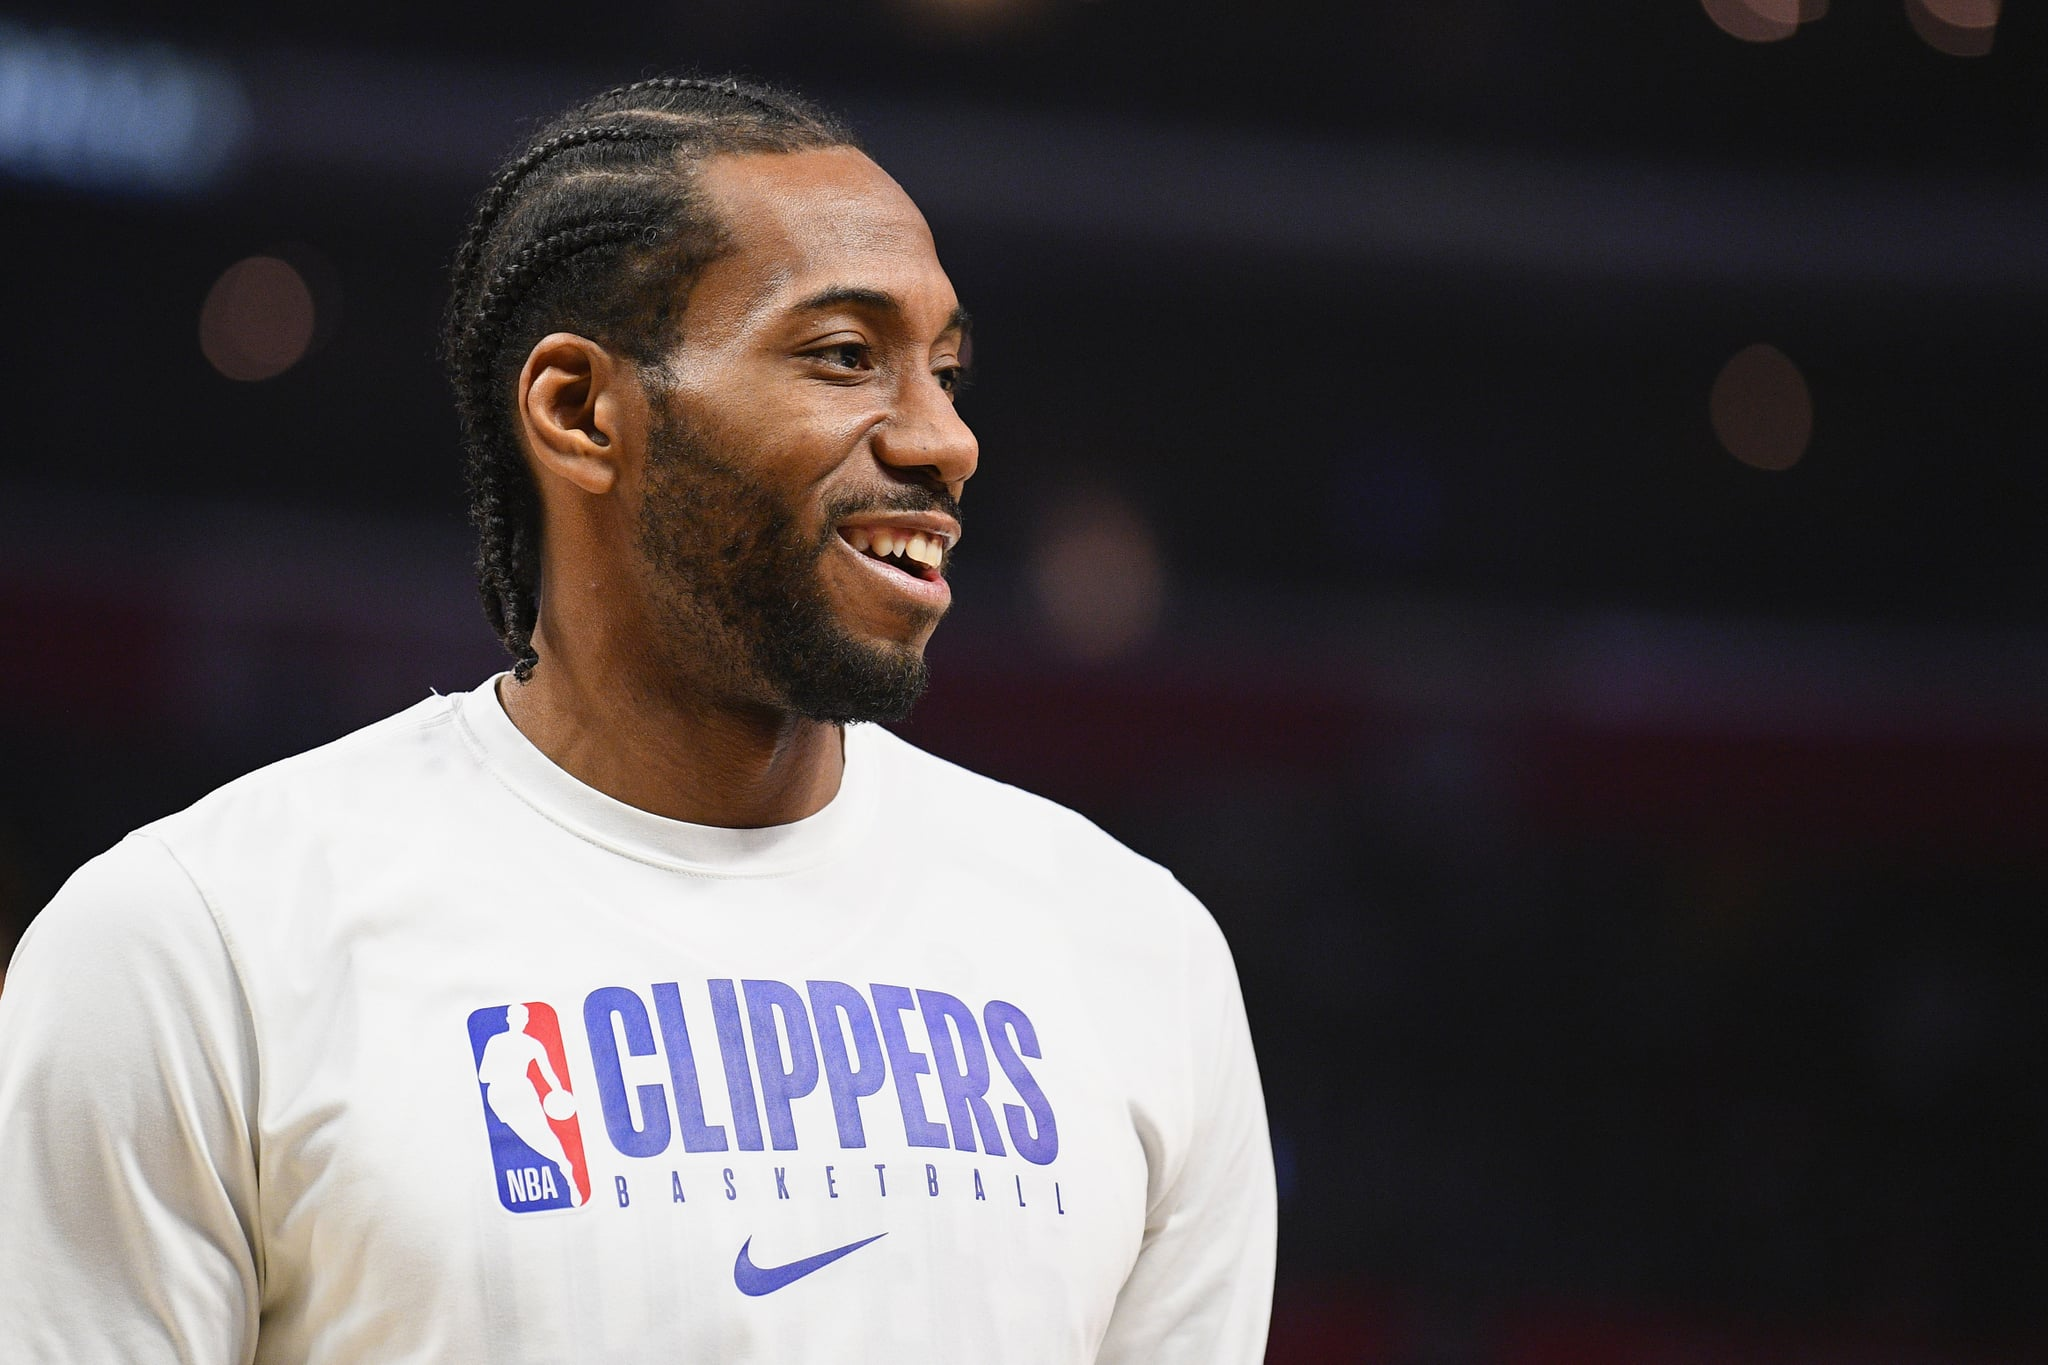 LOS ANGELES, CA - FEBRUARY 05: Los Angeles Clippers Forward Kawhi Leonard (2) looks on before a NBA game between the Miami Heat and the Los Angeles Clippers on February 5, 2020 at STAPLES Centre in Los Angeles, CA. (Photo by Brian Rothmuller/Icon Sportswire via Getty Images)